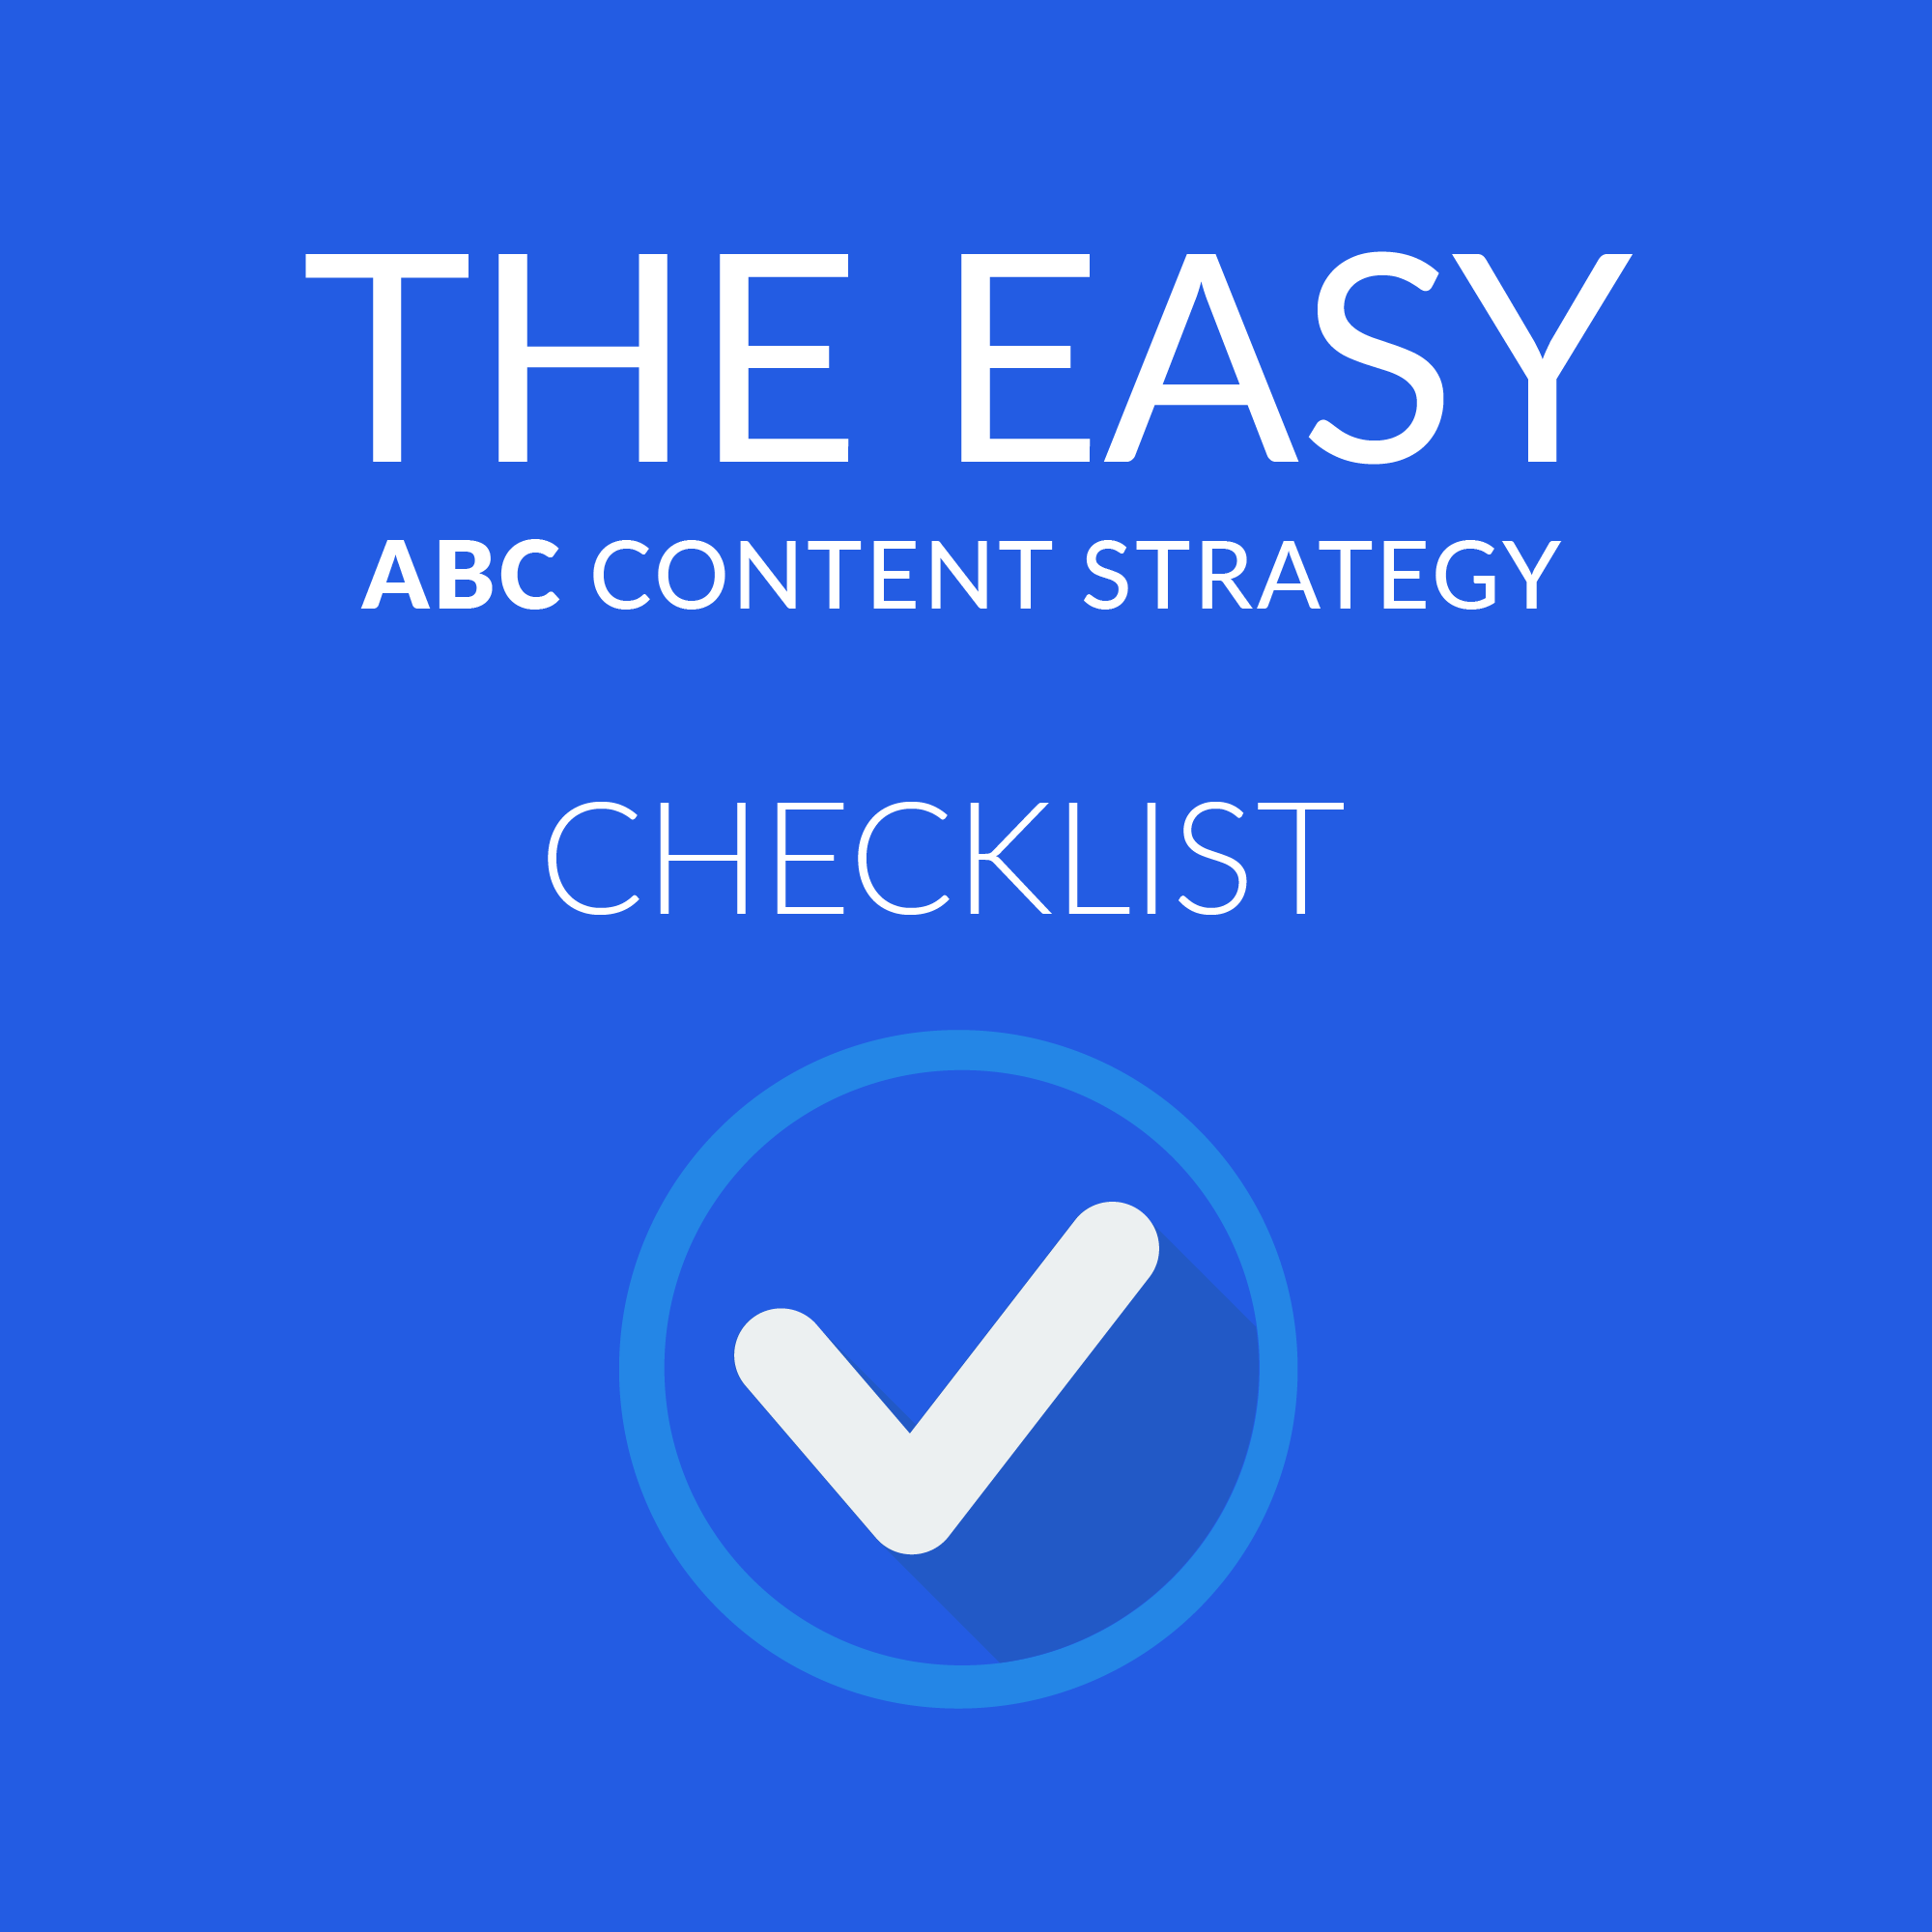 The Easy ABC Content Strategy Checklist